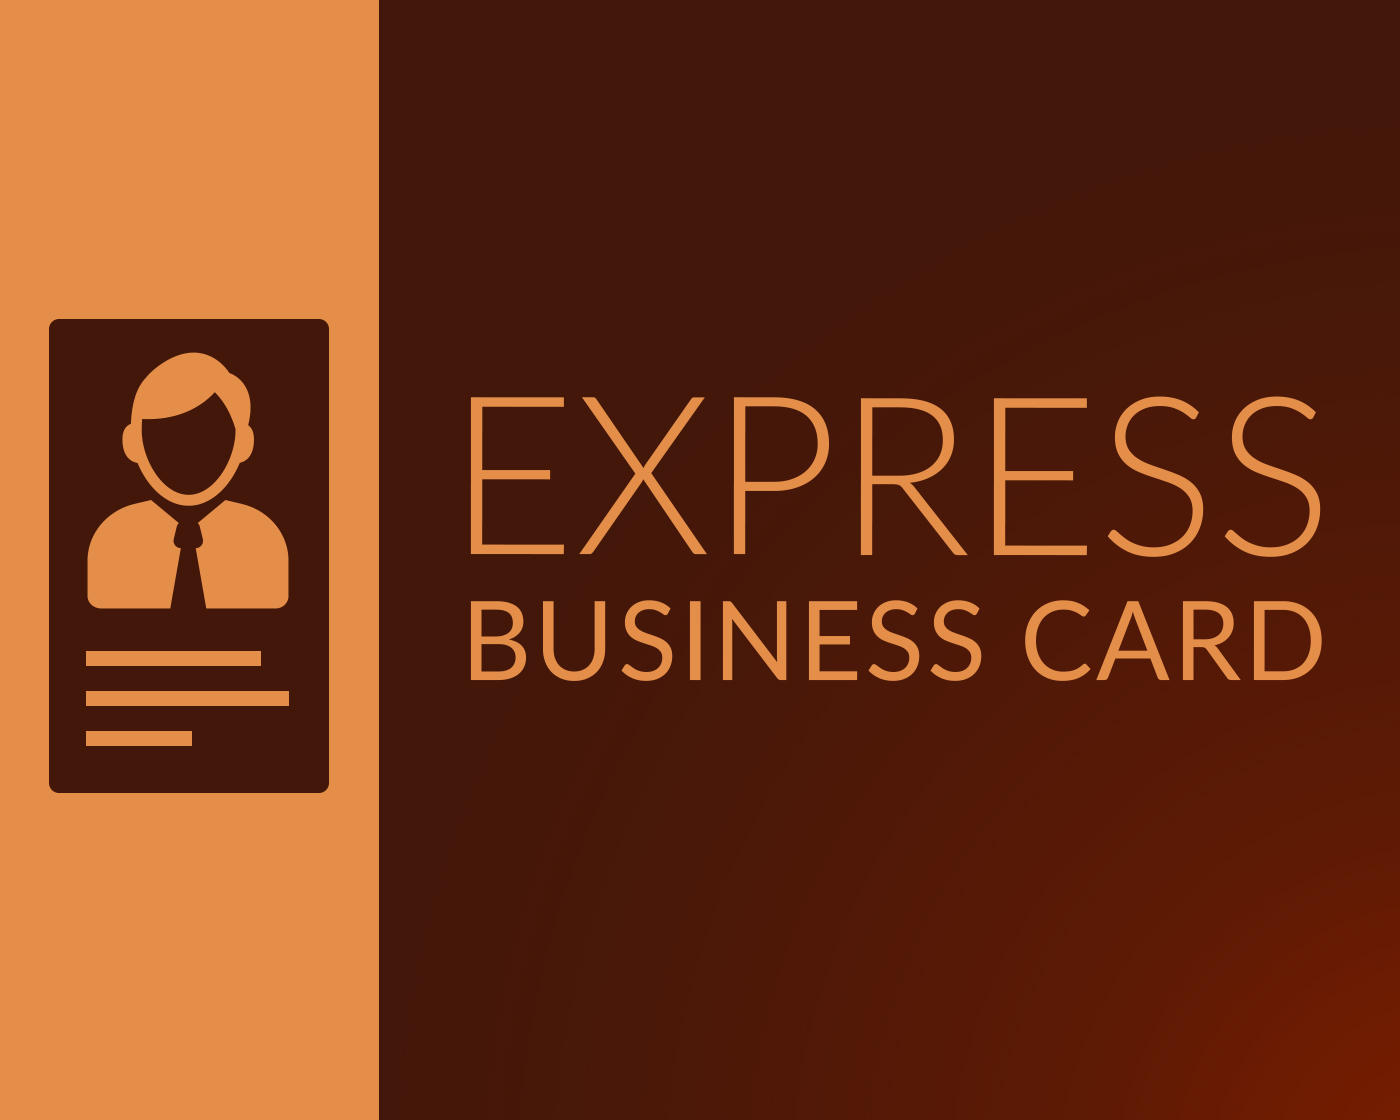 Express Business Card Design by AnasRahmoun - 80665